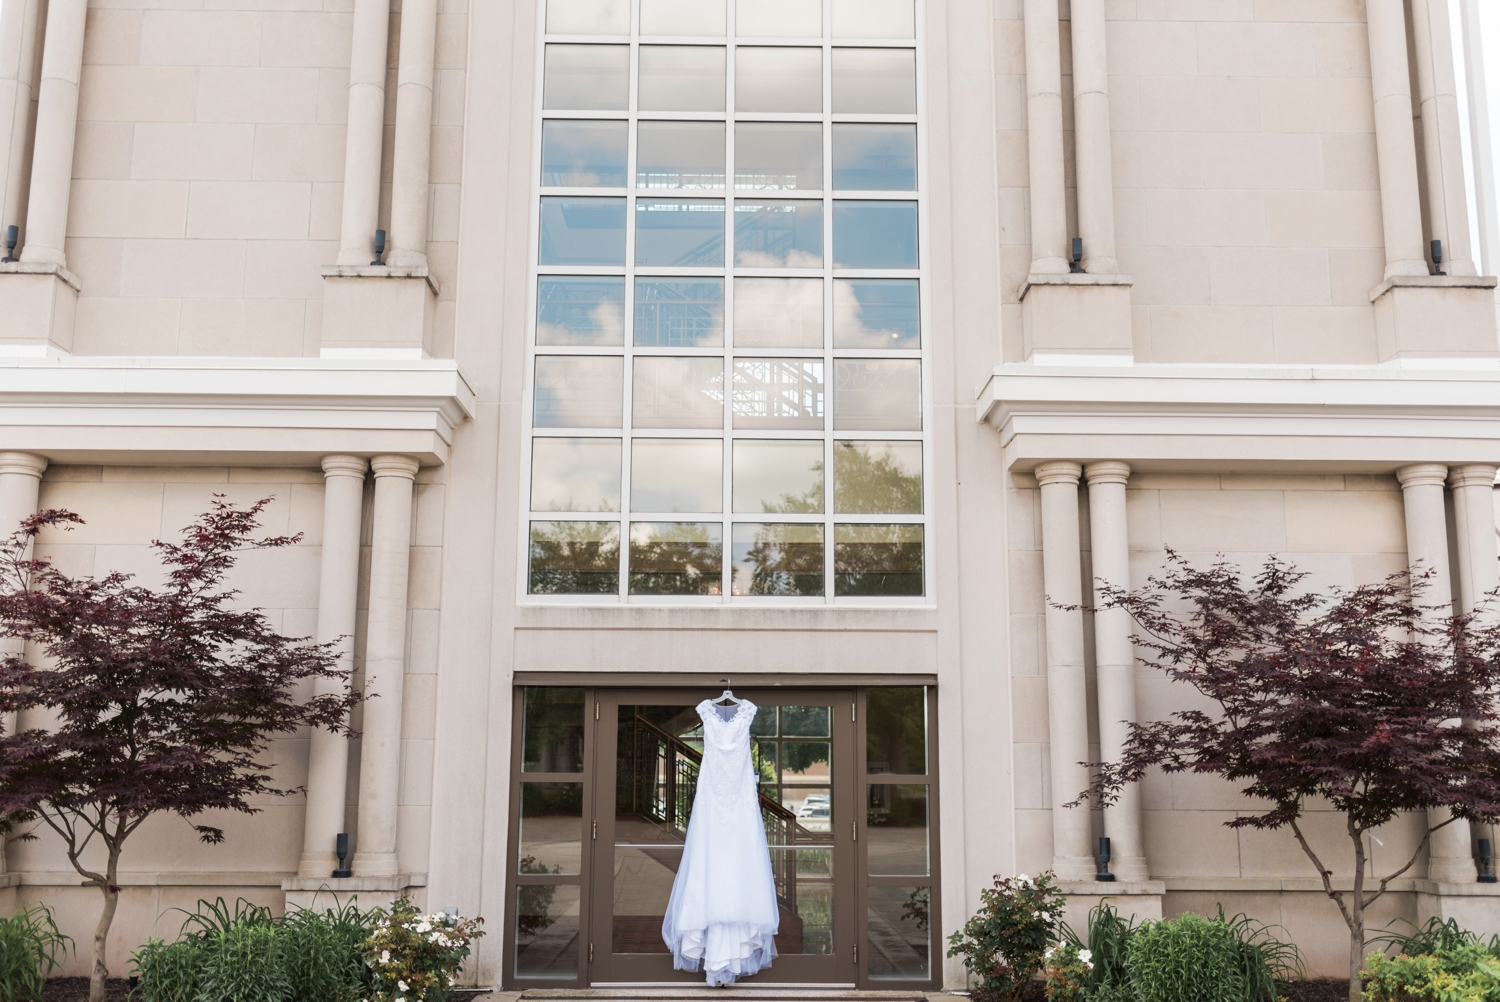 Community_Life_Center_Indianapolis_Indiana_Wedding_Photographer_Chloe_Luka_Photography_6827.jpg